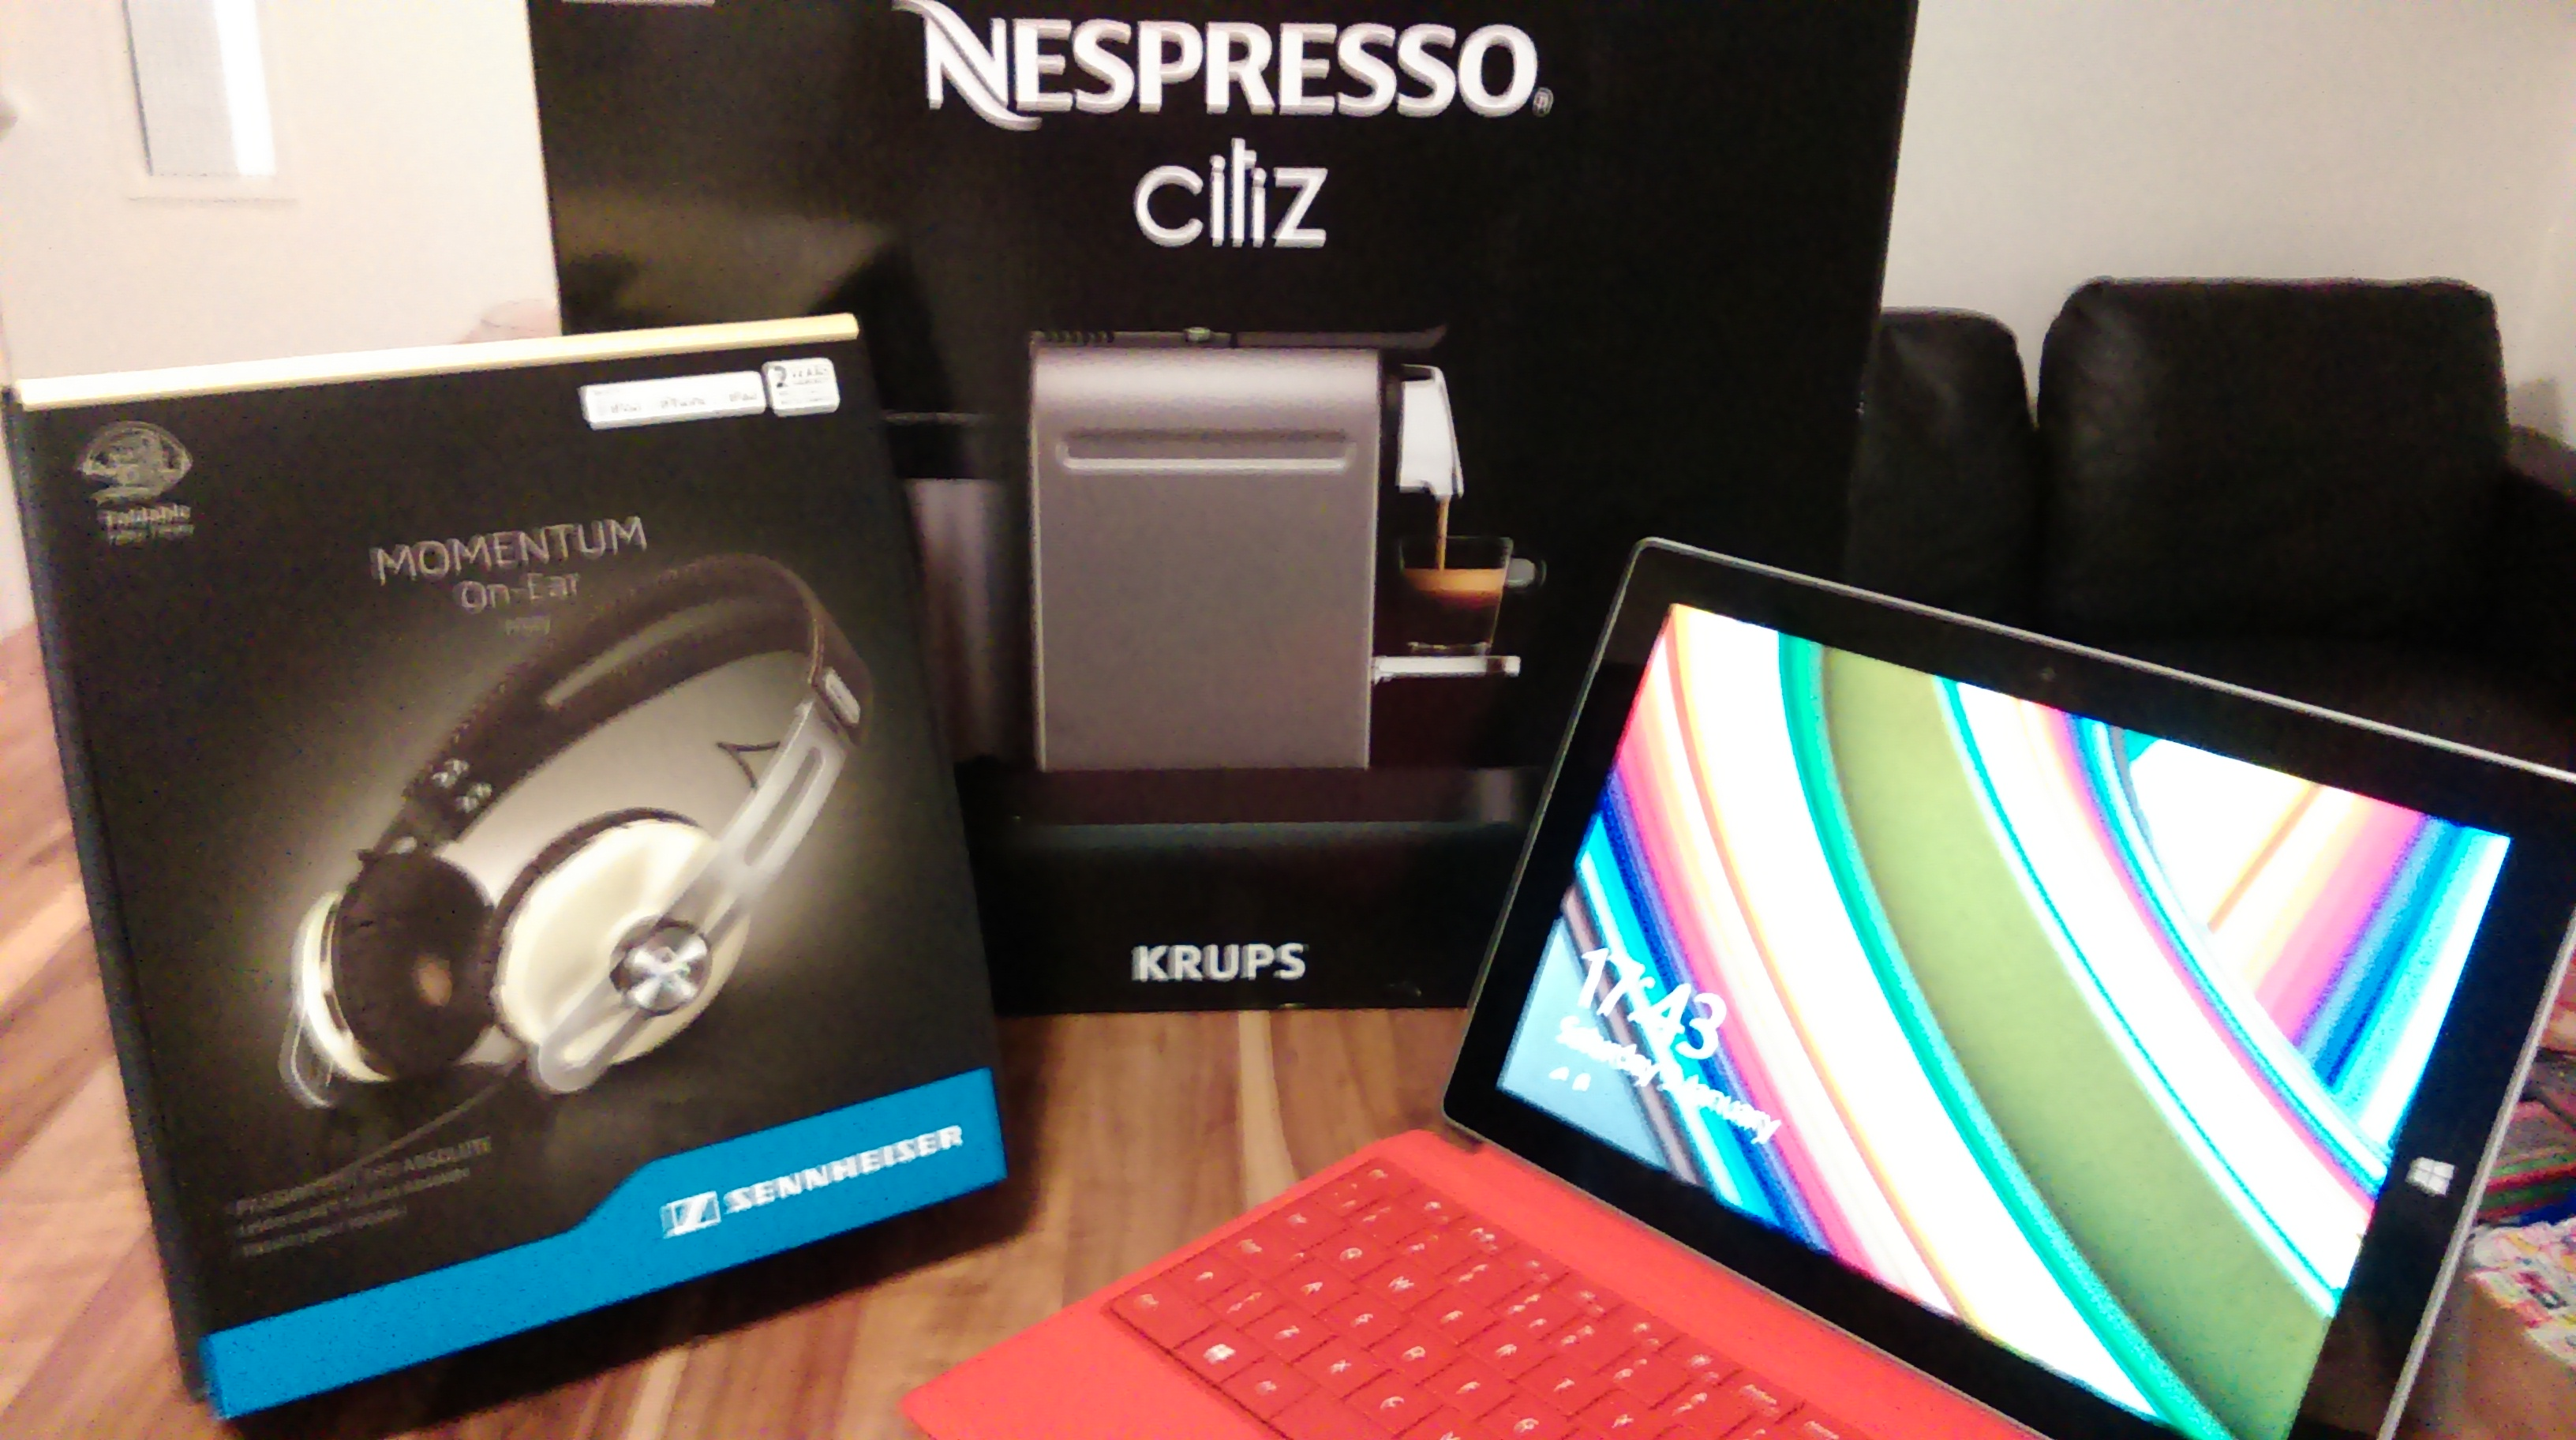 Some of the prizes from the technology bundle that I won from the #WINYOURFEES comp, it also included a kettle, toaster, sandwich toaster, iron, hoover etc